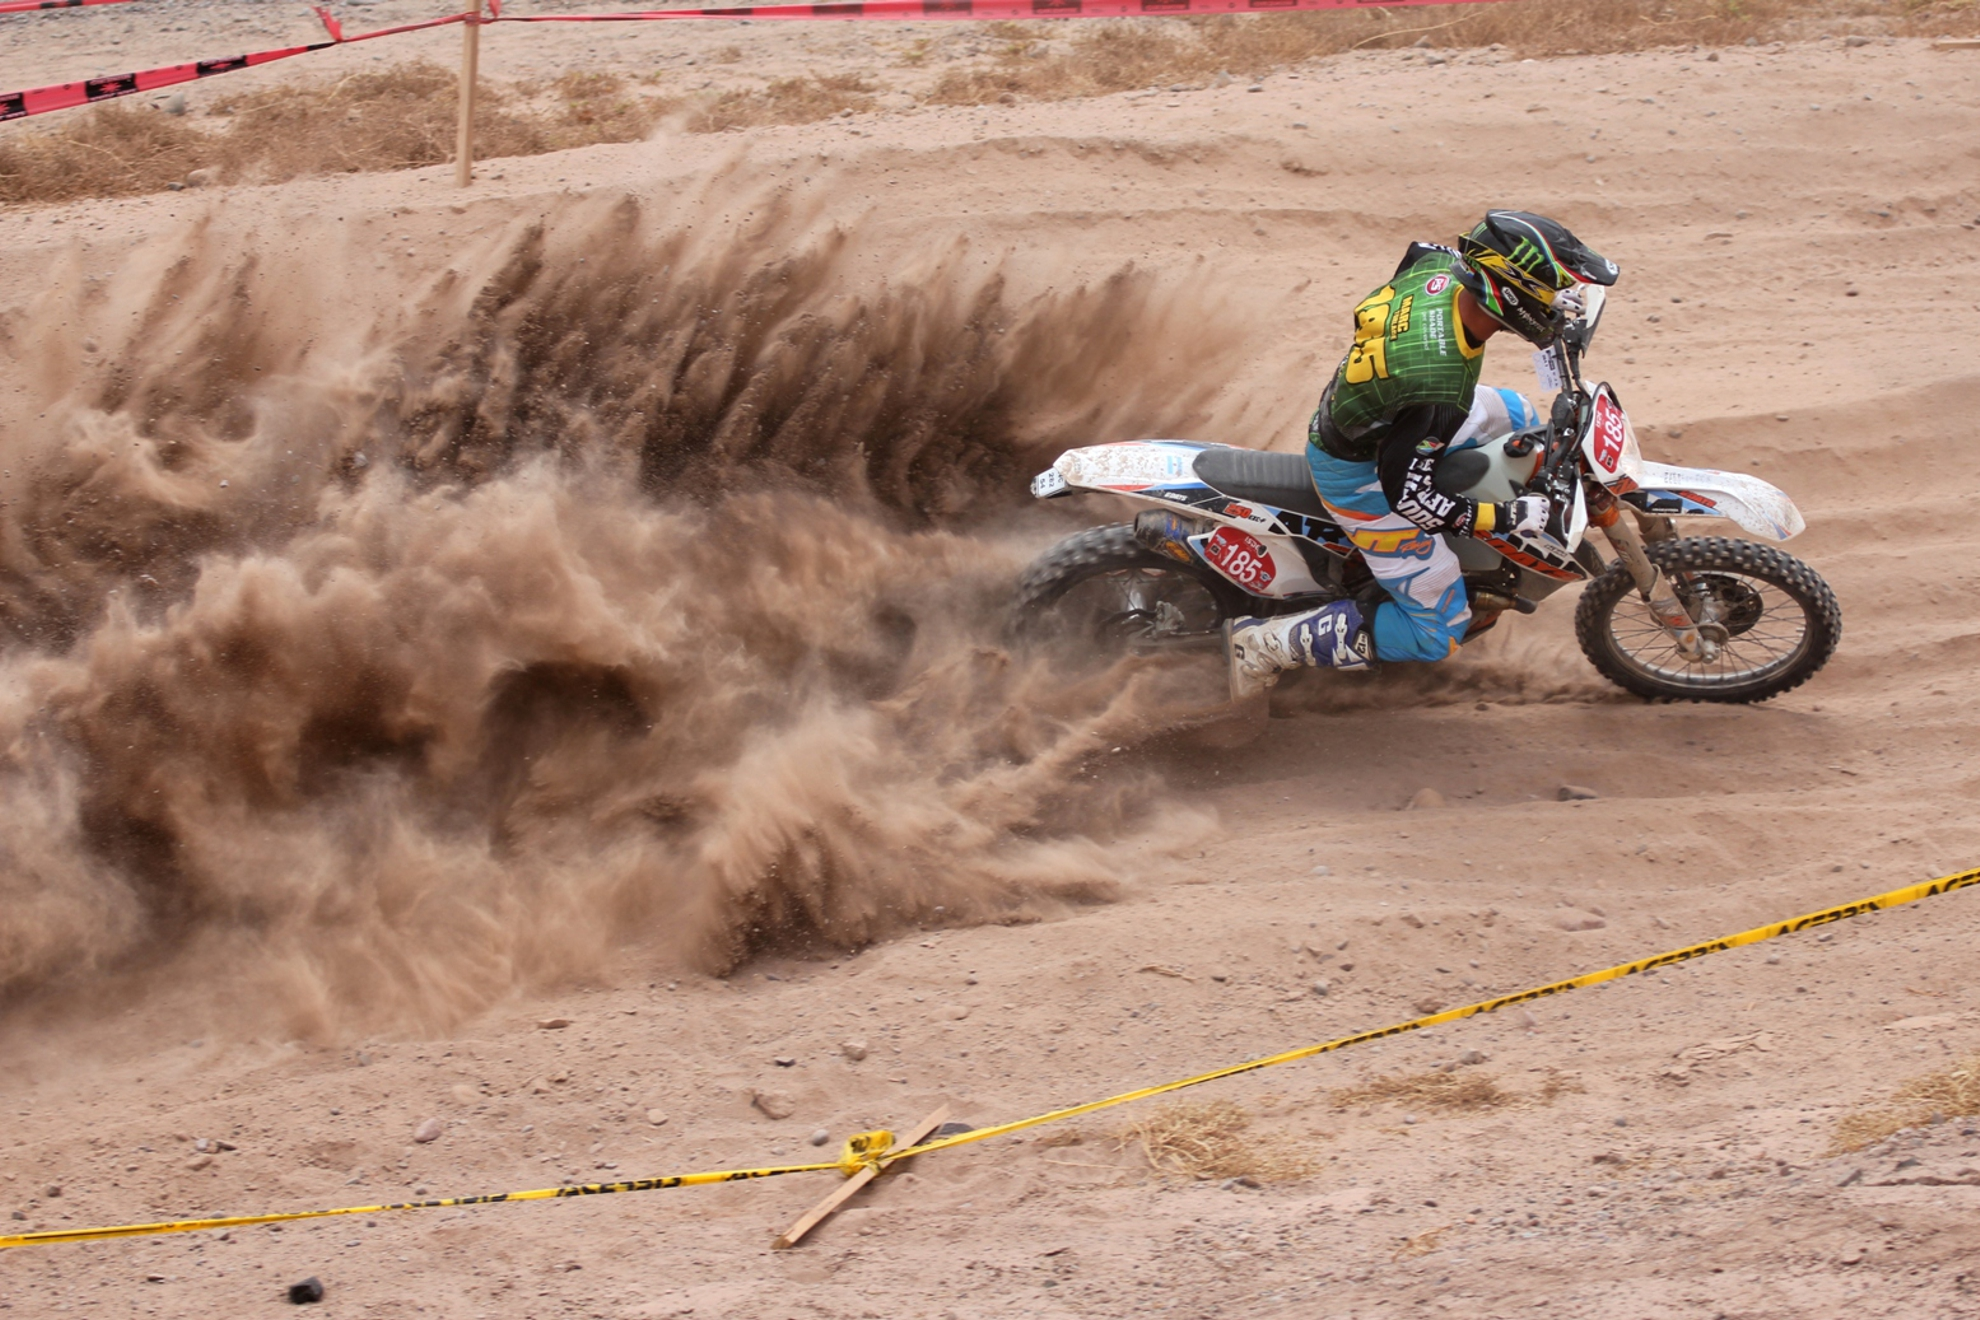 South-Africa-Enduro-Motorcycle-Racing